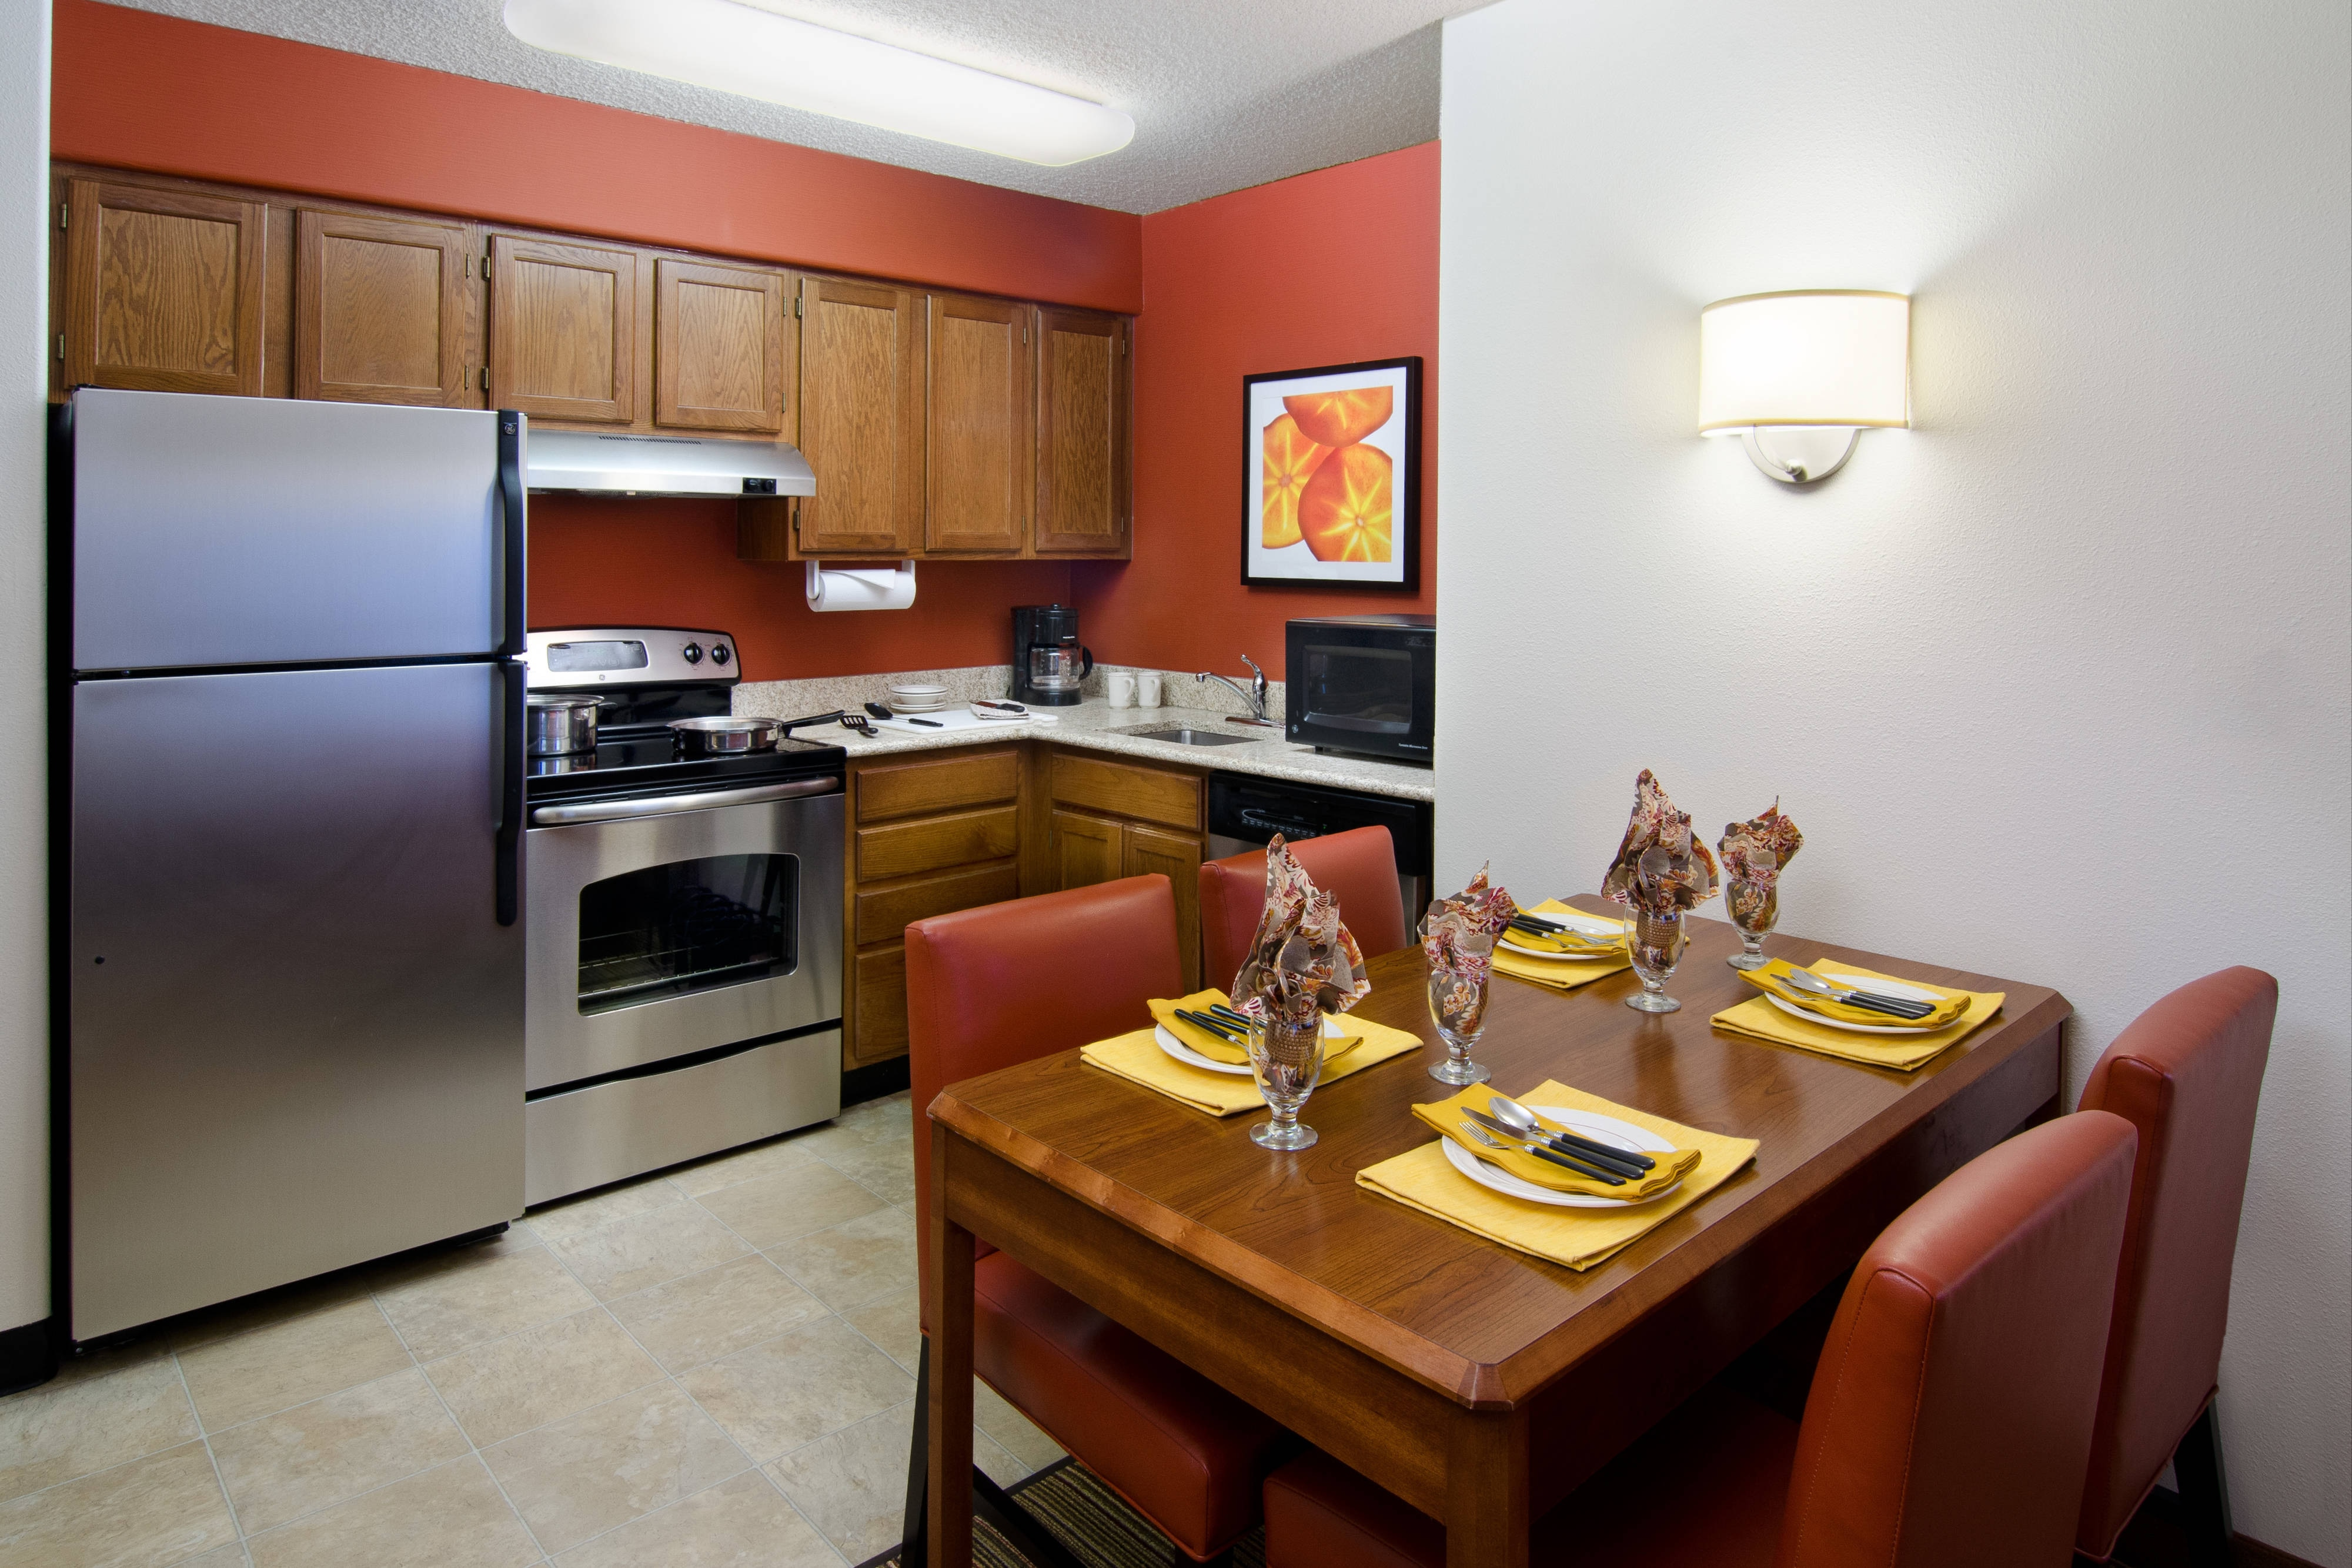 Reno Hotel Suite Kitchen